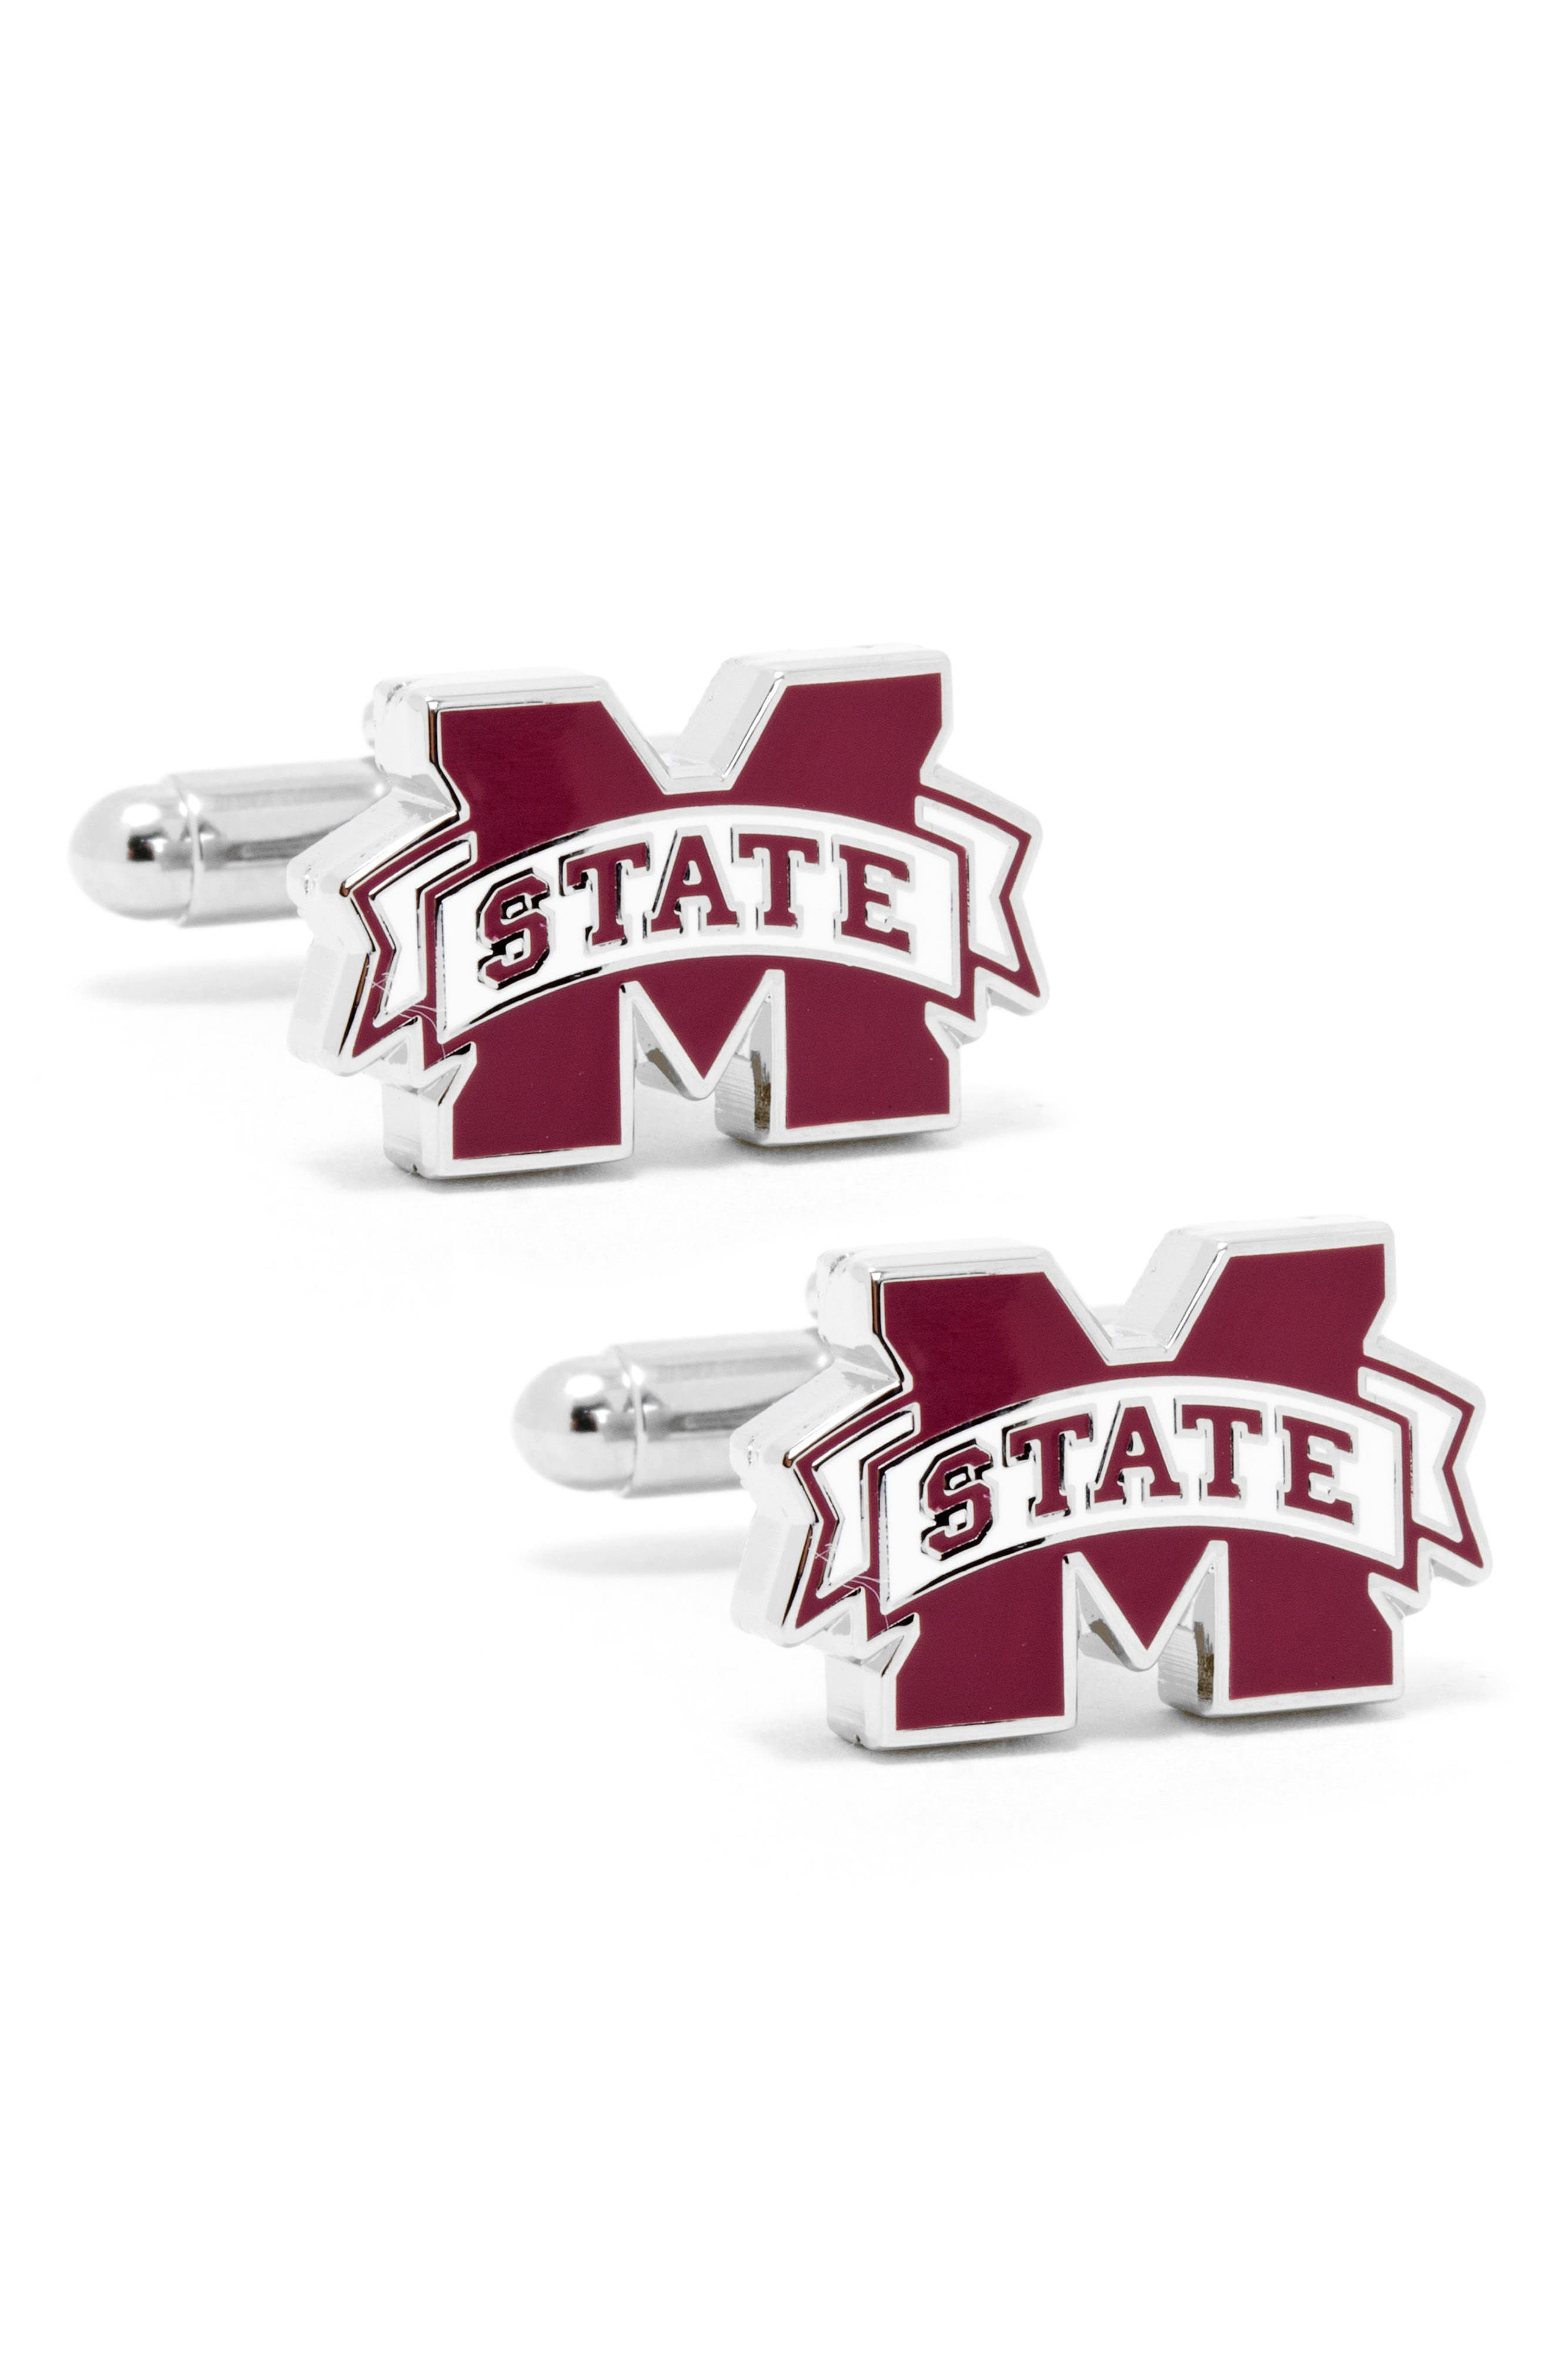 Mississippi Bulldogs Cuff Links,                             Main thumbnail 1, color,                             RED